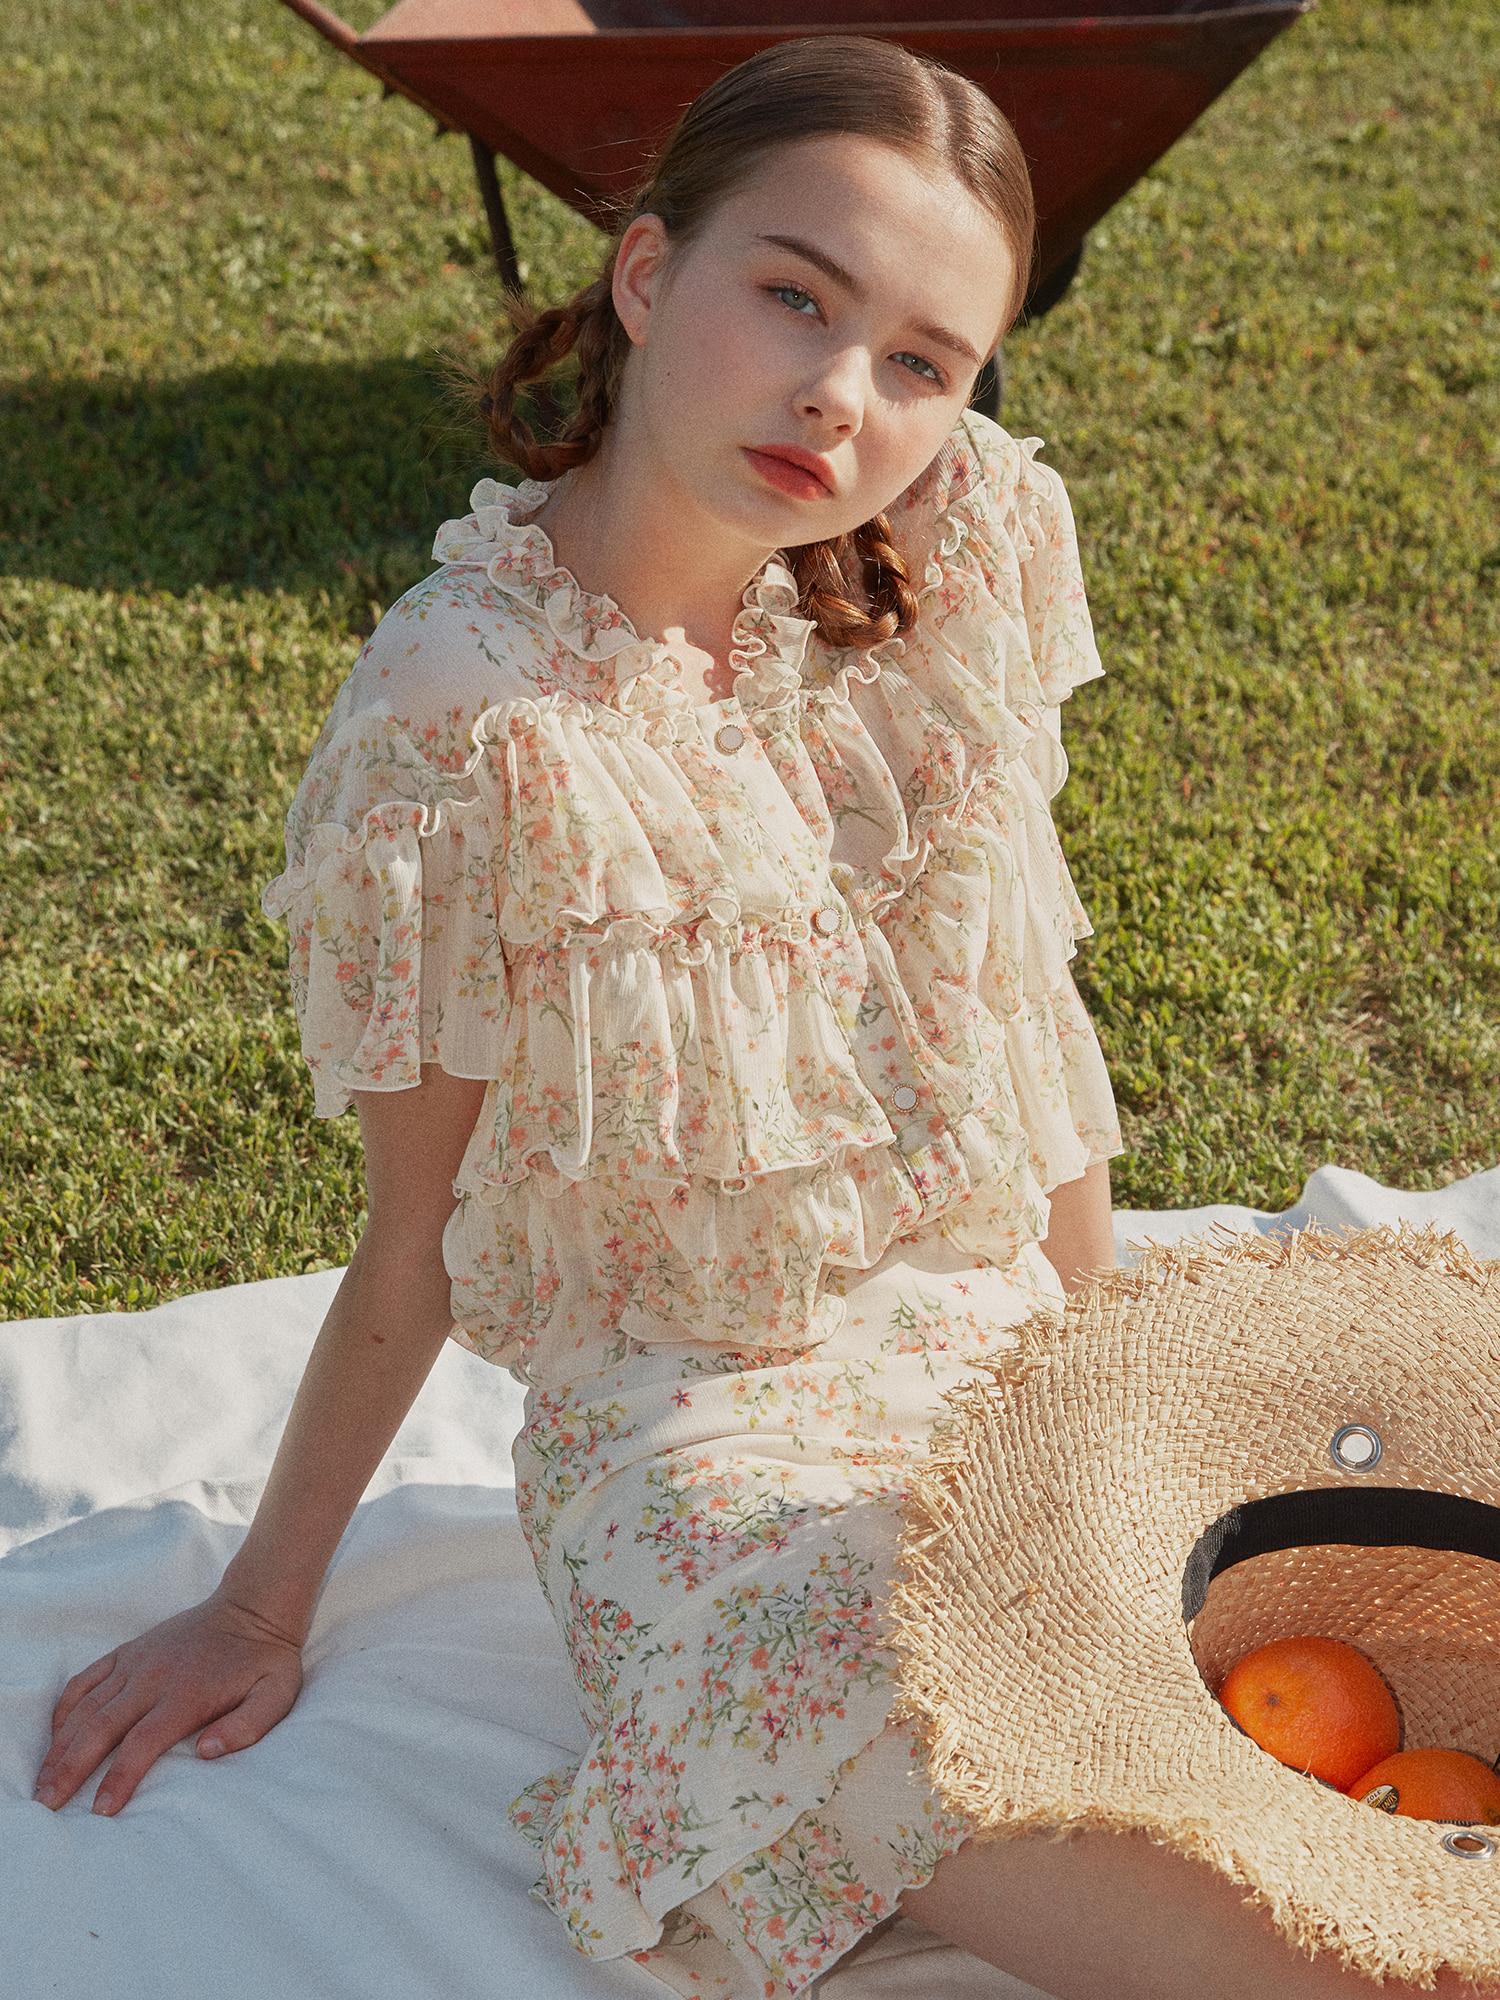 [SET] V-neck flower frill blouse_apricot & Flower frill layered skirt_apricot